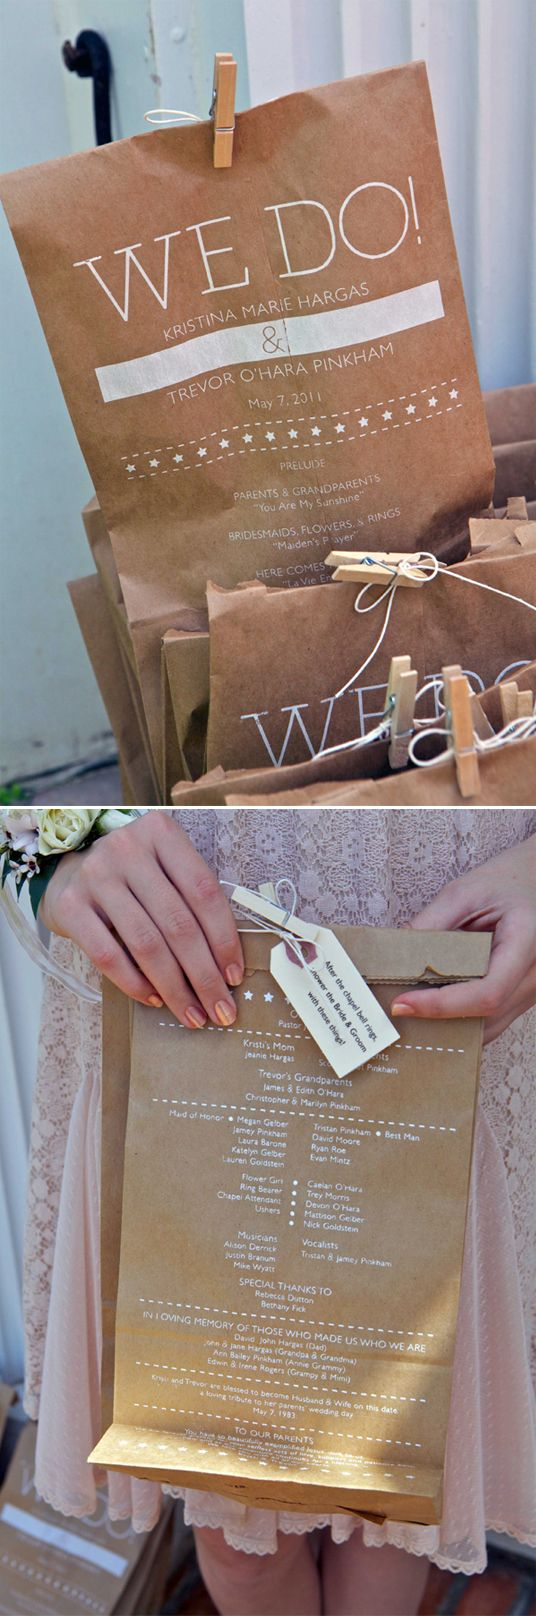 #wedding program printed on brown bags filled w/goodies for the toss.